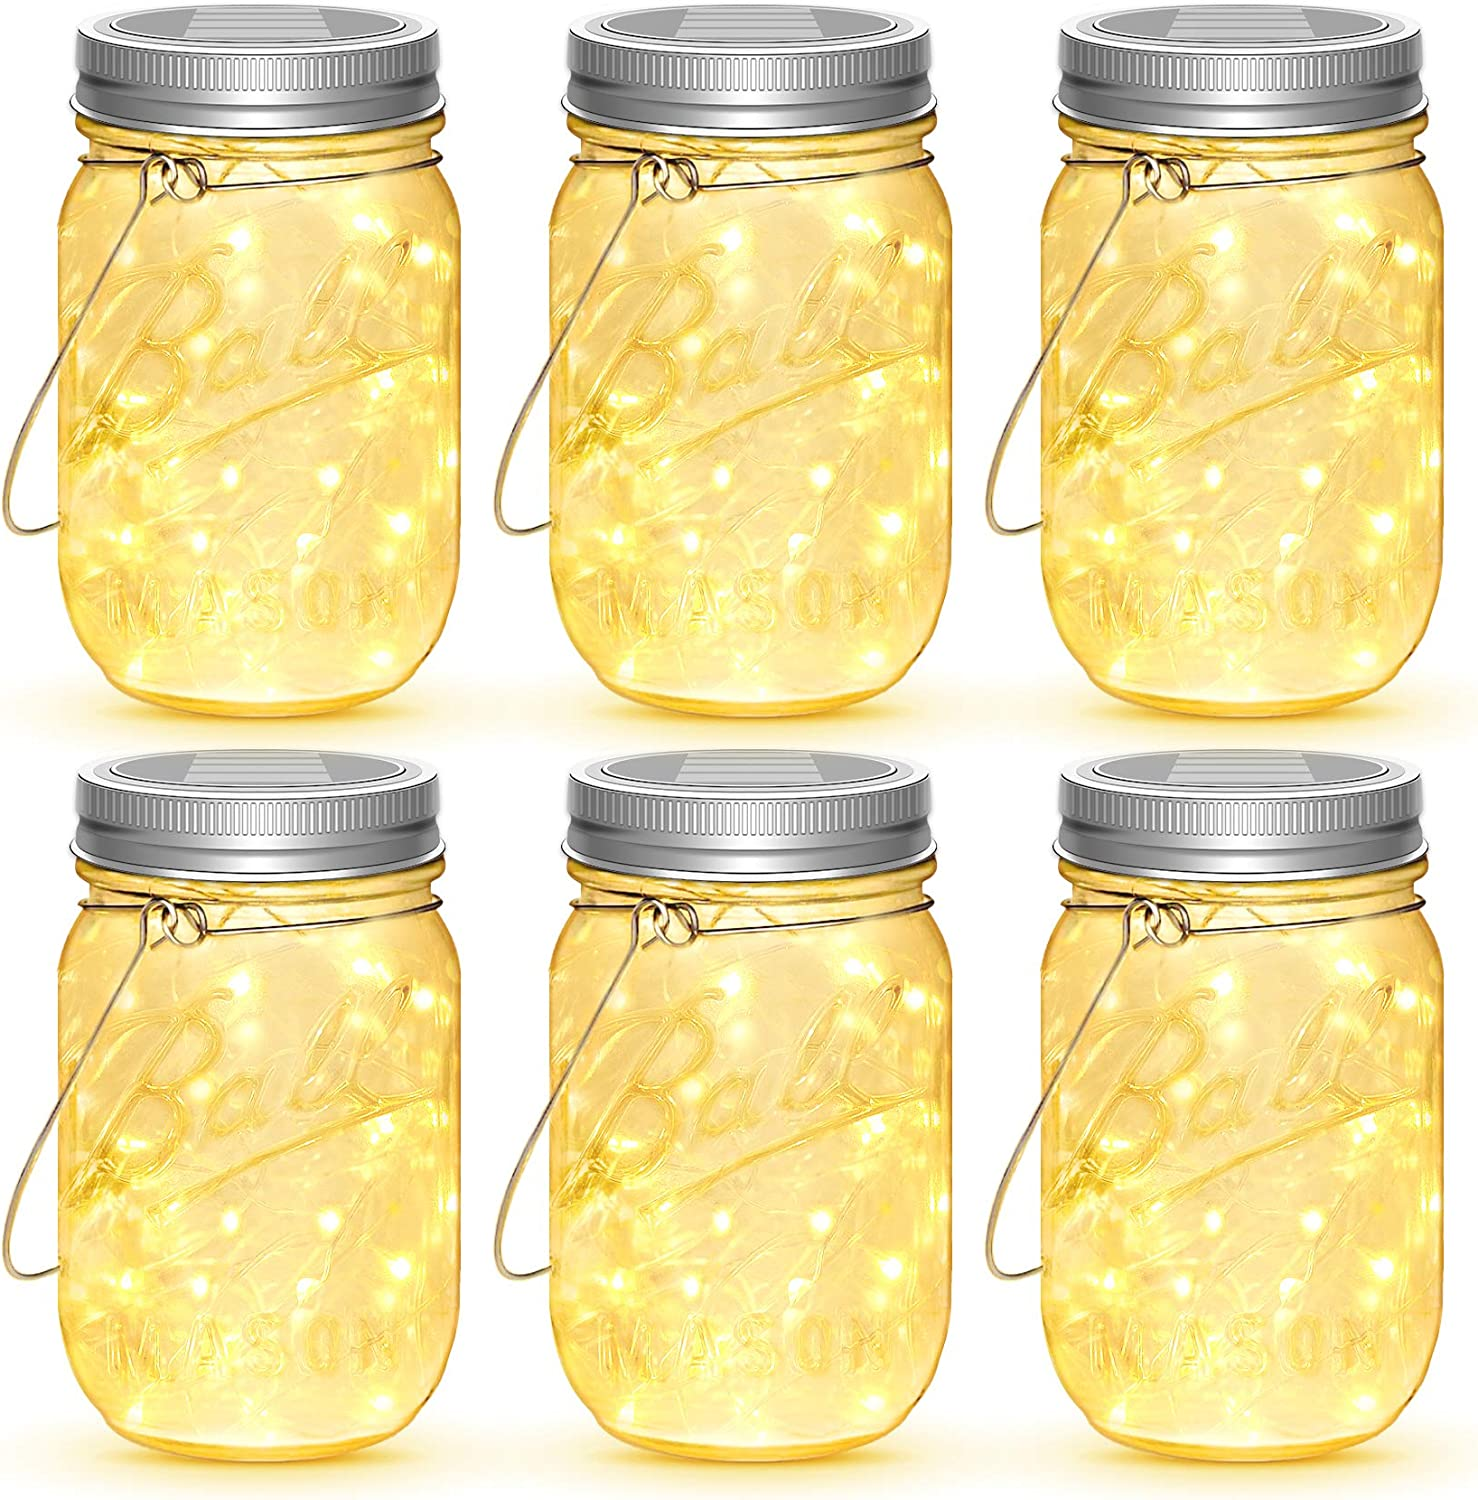 Mason Jar Solar Lights, 6 Pack 30 LEDs Fairy Lights with Jars and Hangers, IPX6 Waterproof Hanging Solar Lights Outdoor, Decorative Solar Lanterns for Garden Fence Patio Wedding